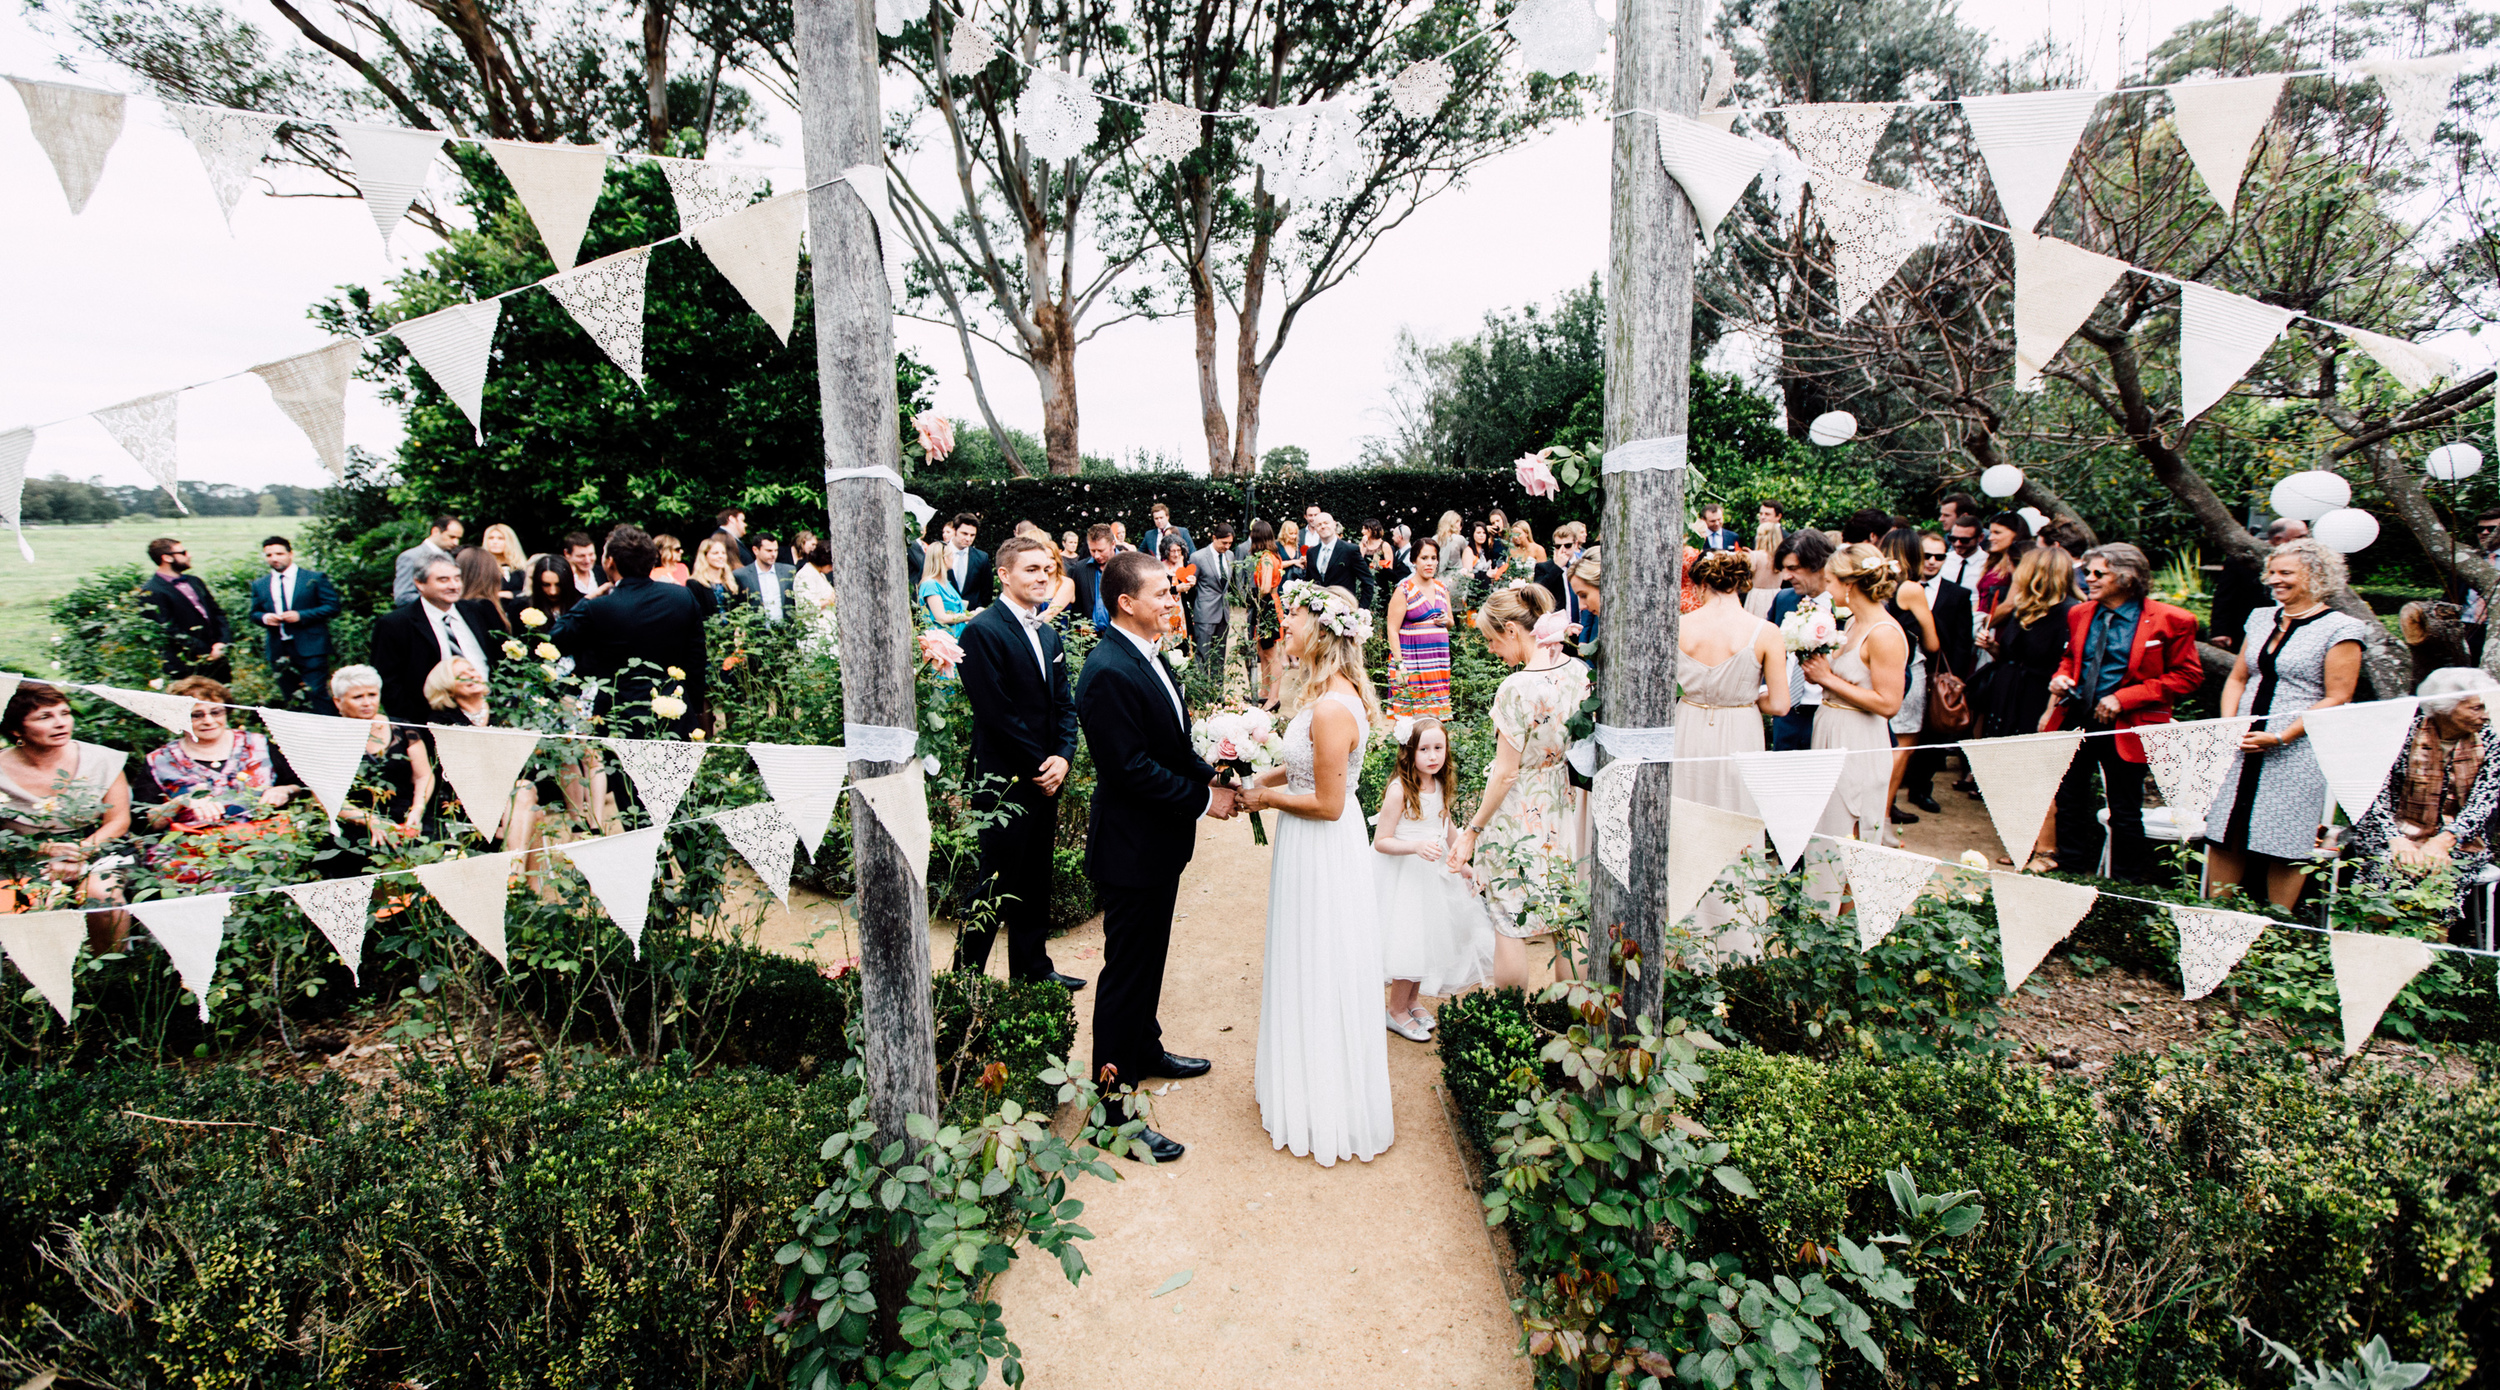 10CarolineMcCredie-Wedding-ClintonLauraBerry_0007.jpg